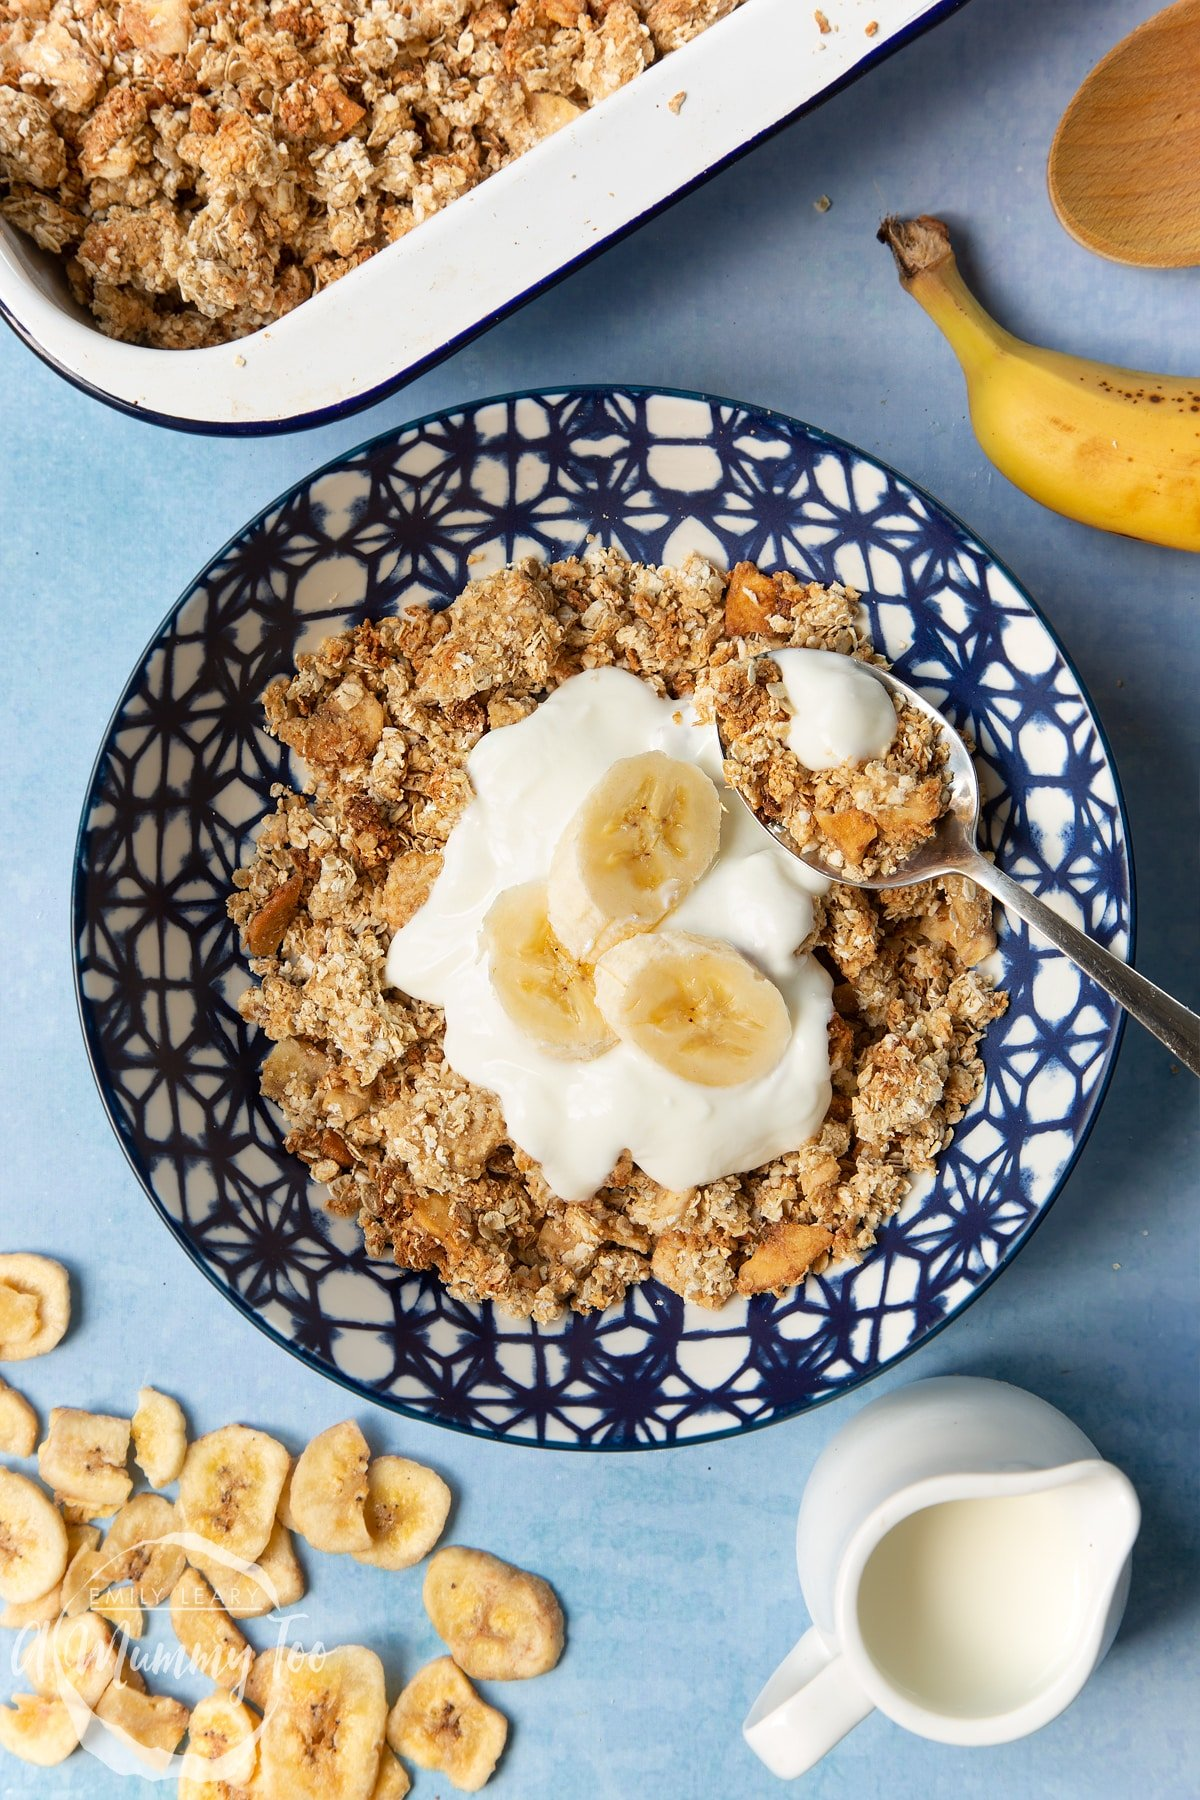 Banana coconut granola served in a blue and white bowl, topped with yogurt and banana. A spoon rests in the bowl.